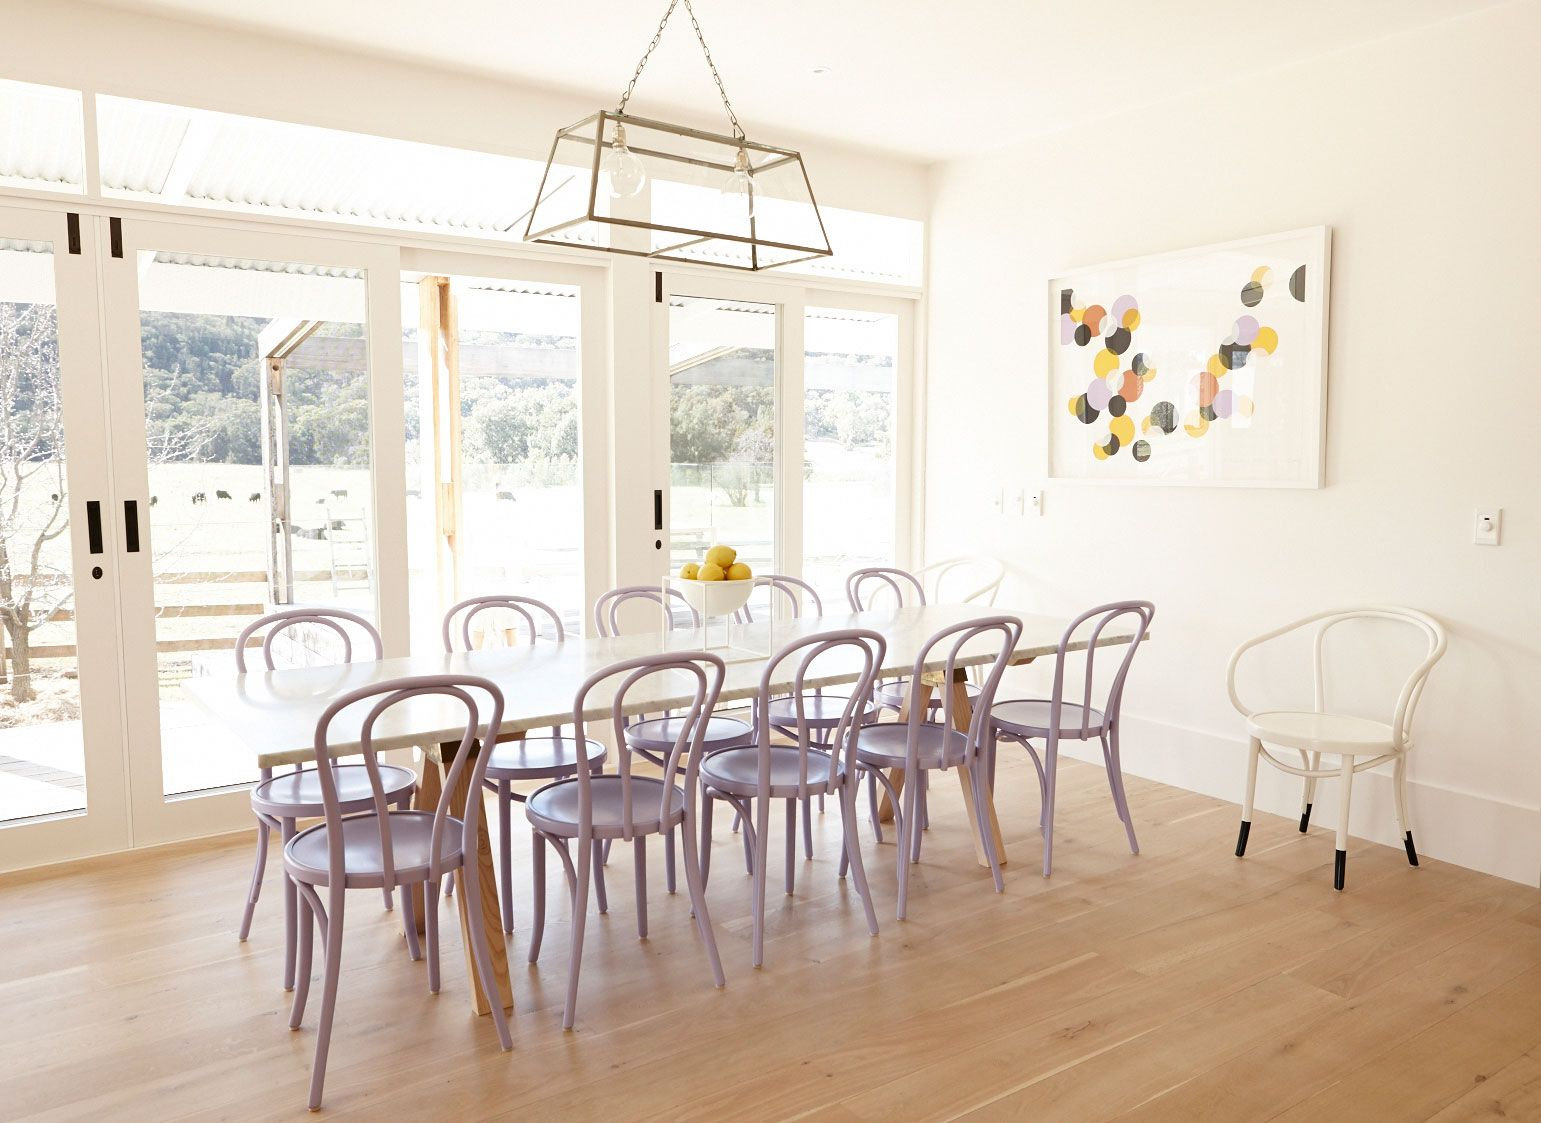 Bentwood chairs and table - Interiors